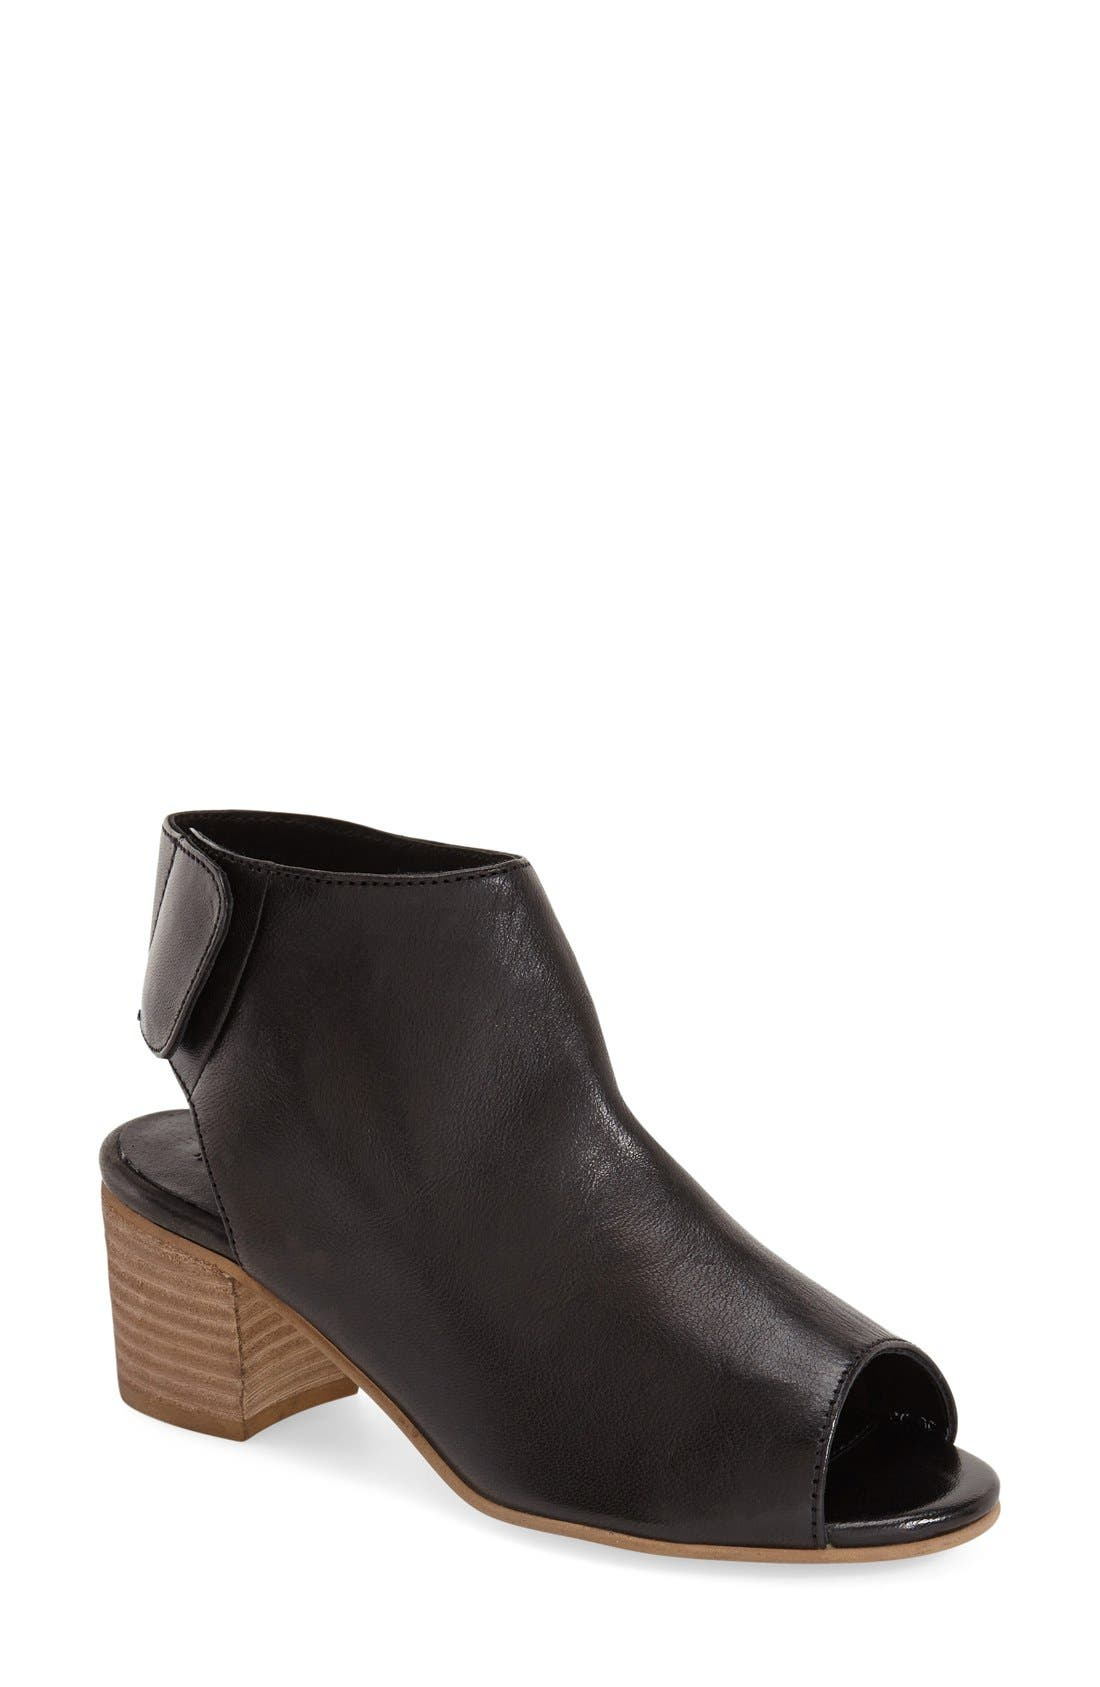 Main Image - Dune London 'Joanna' Bootie (Women)